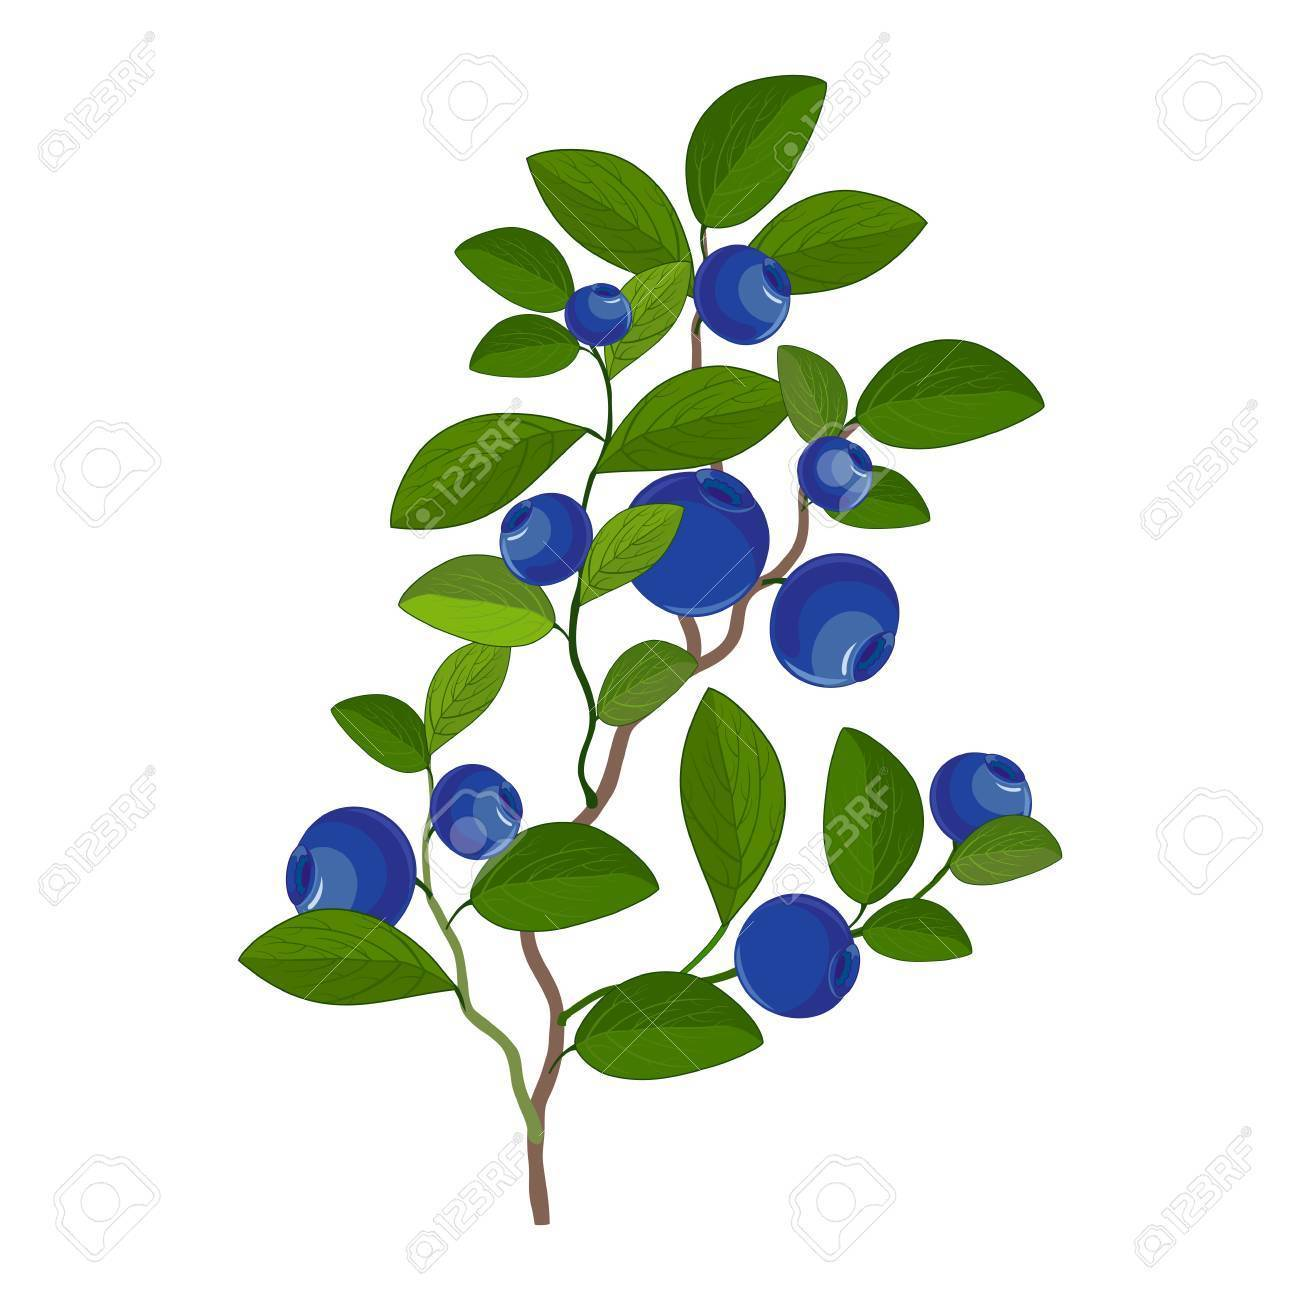 Berries on a bush clipart vector royalty free Bush blueberries, berries, leaves » Clipart Portal vector royalty free